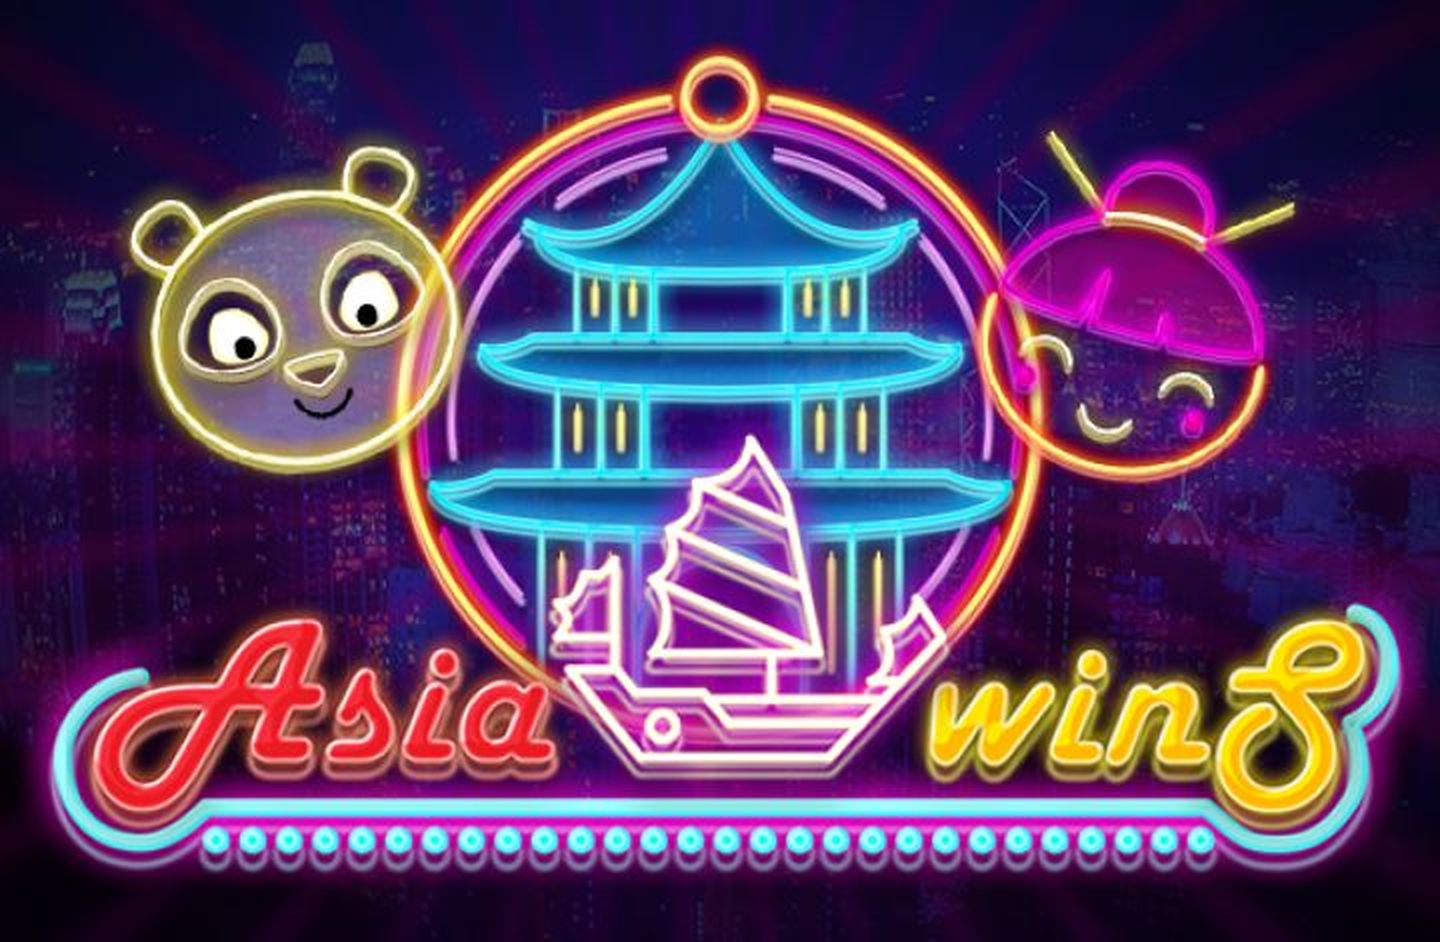 The Asia Wins Online Slot Demo Game by Booming Games